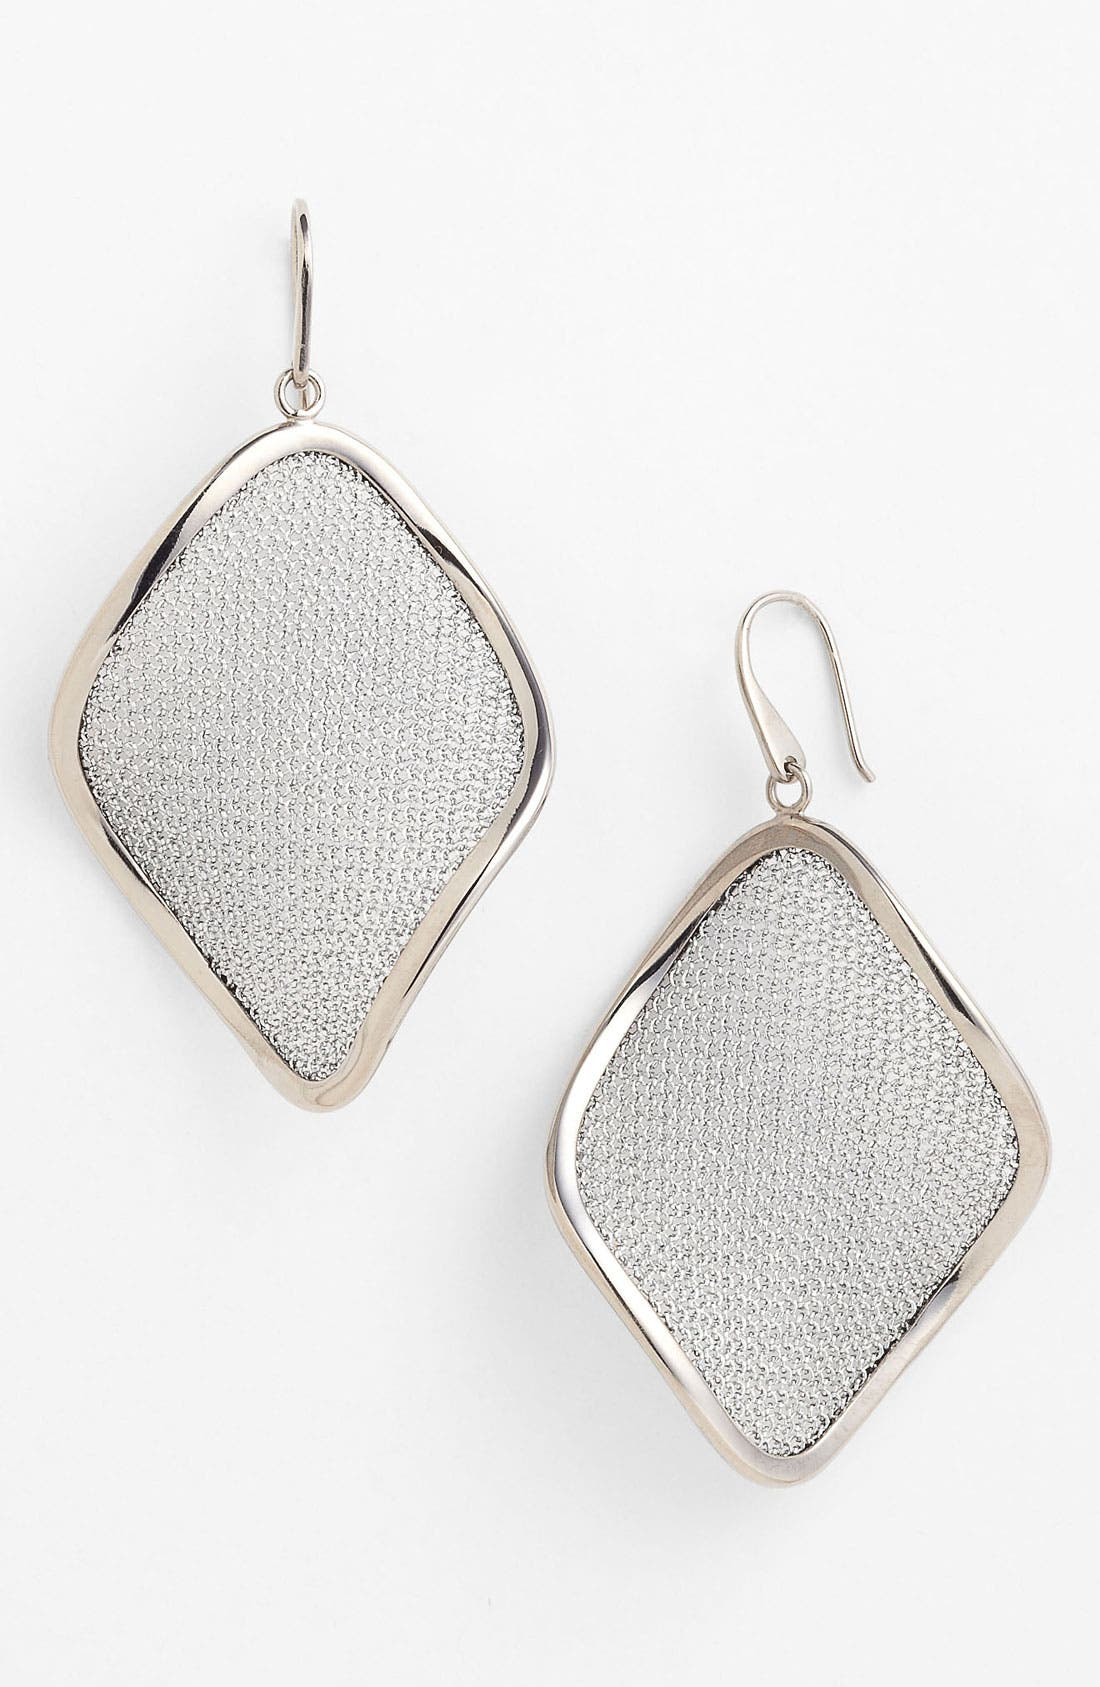 Alternate Image 1 Selected - Adami & Martucci 'Mesh' Large Drop Earrings